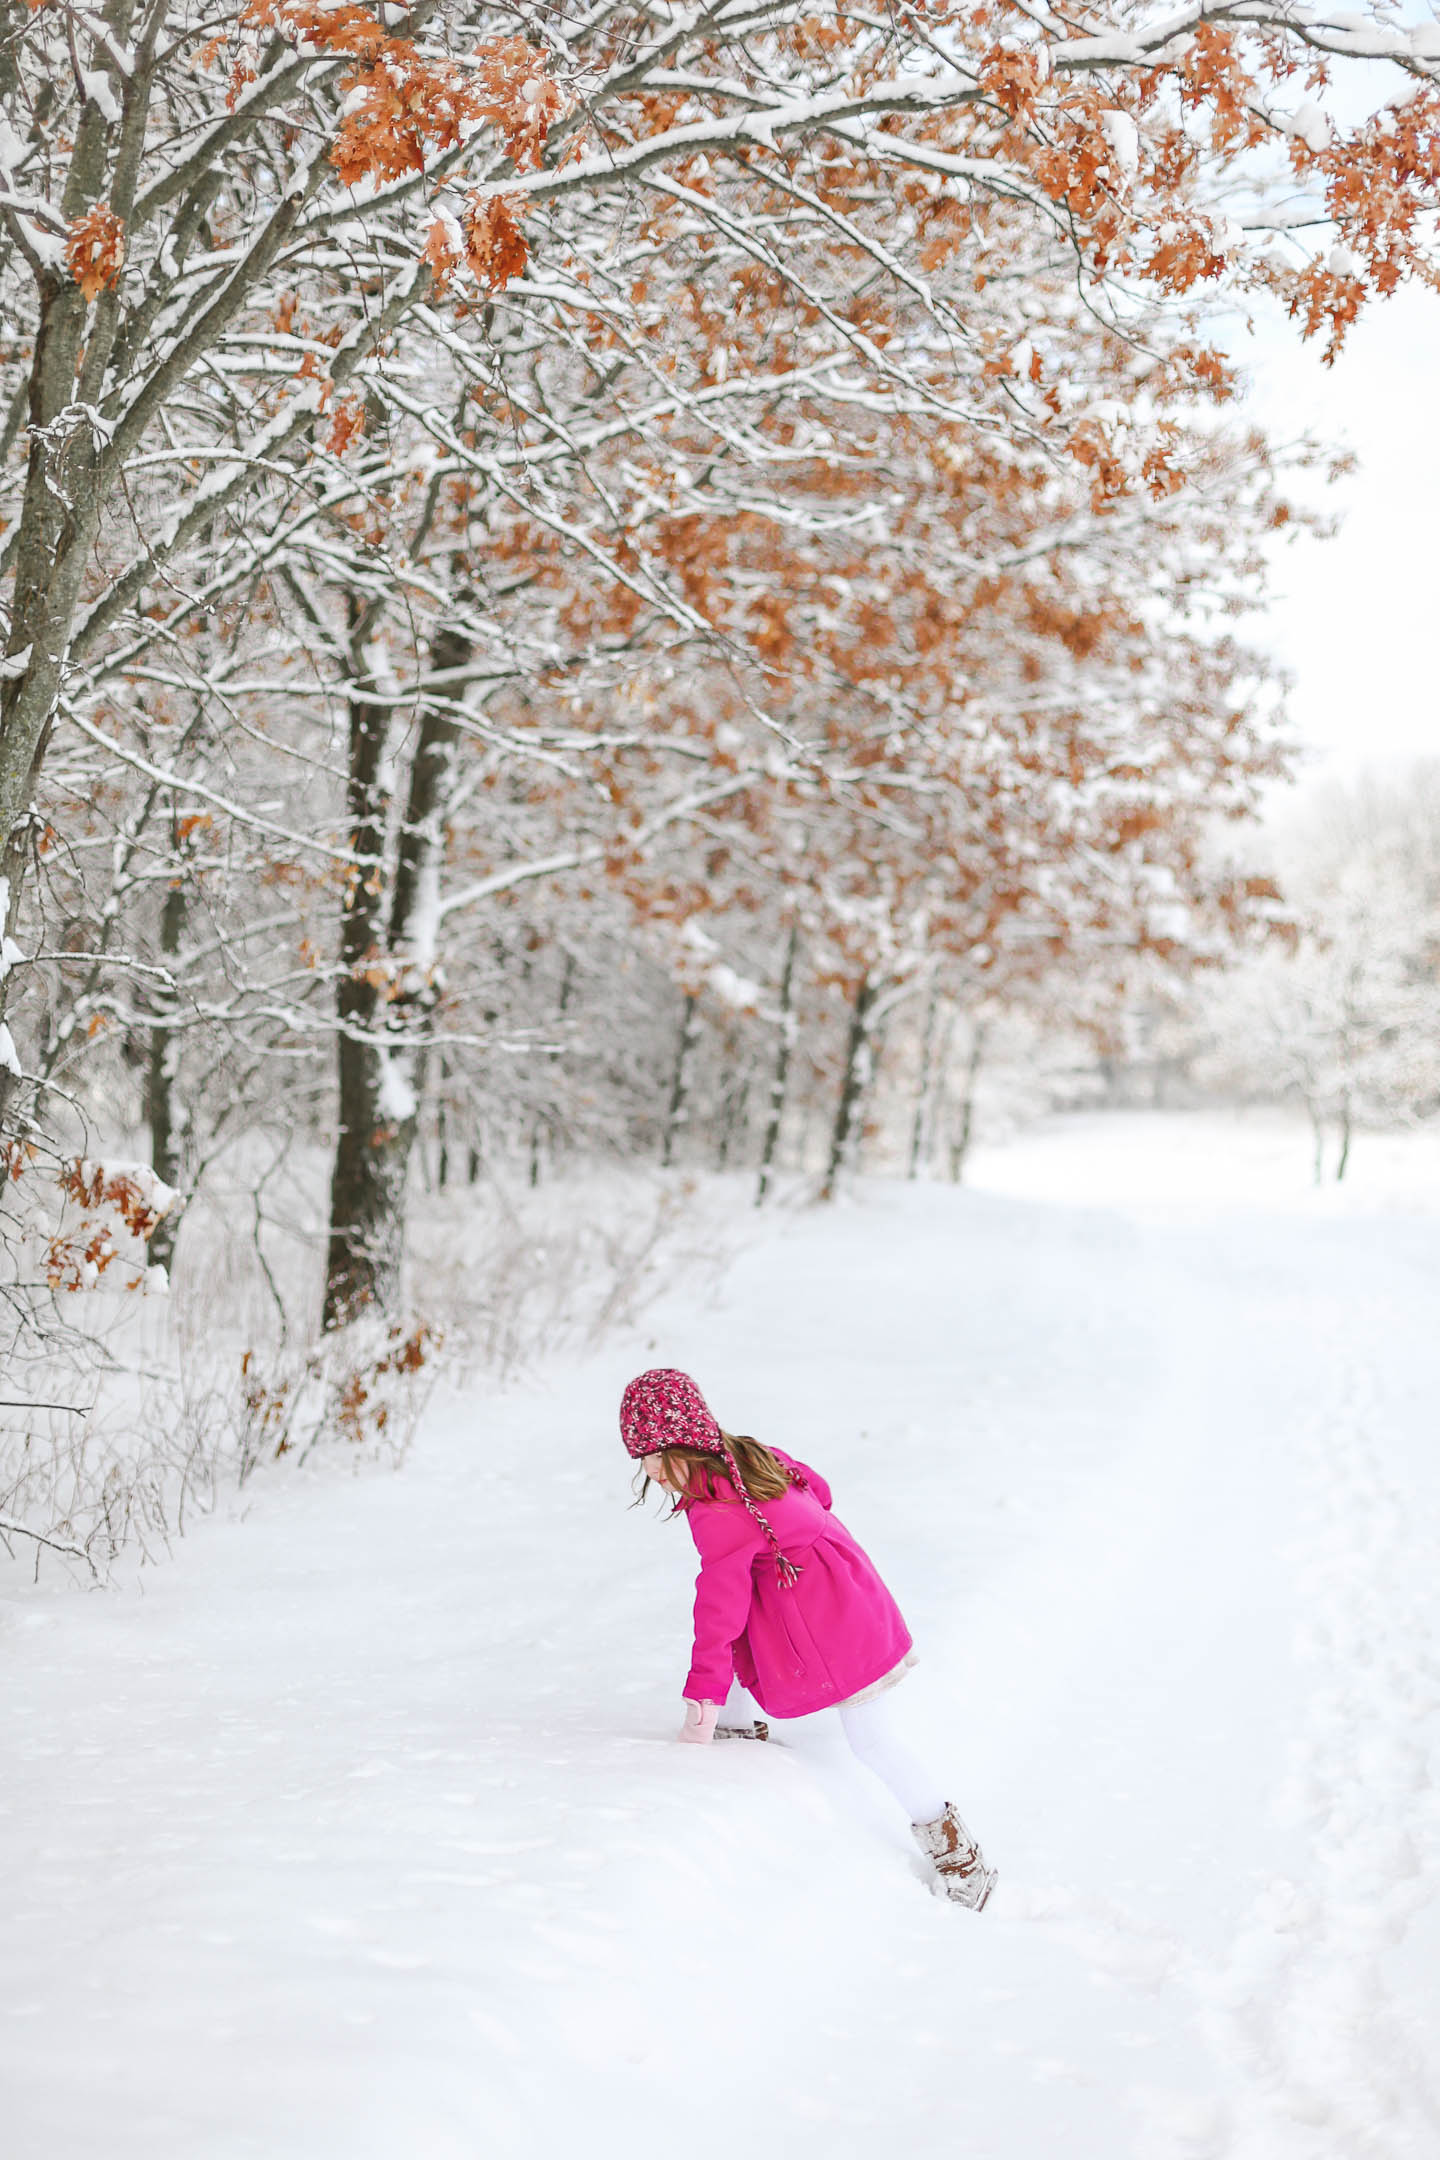 A little girl in a bright pink coat climbing up a snowbank.